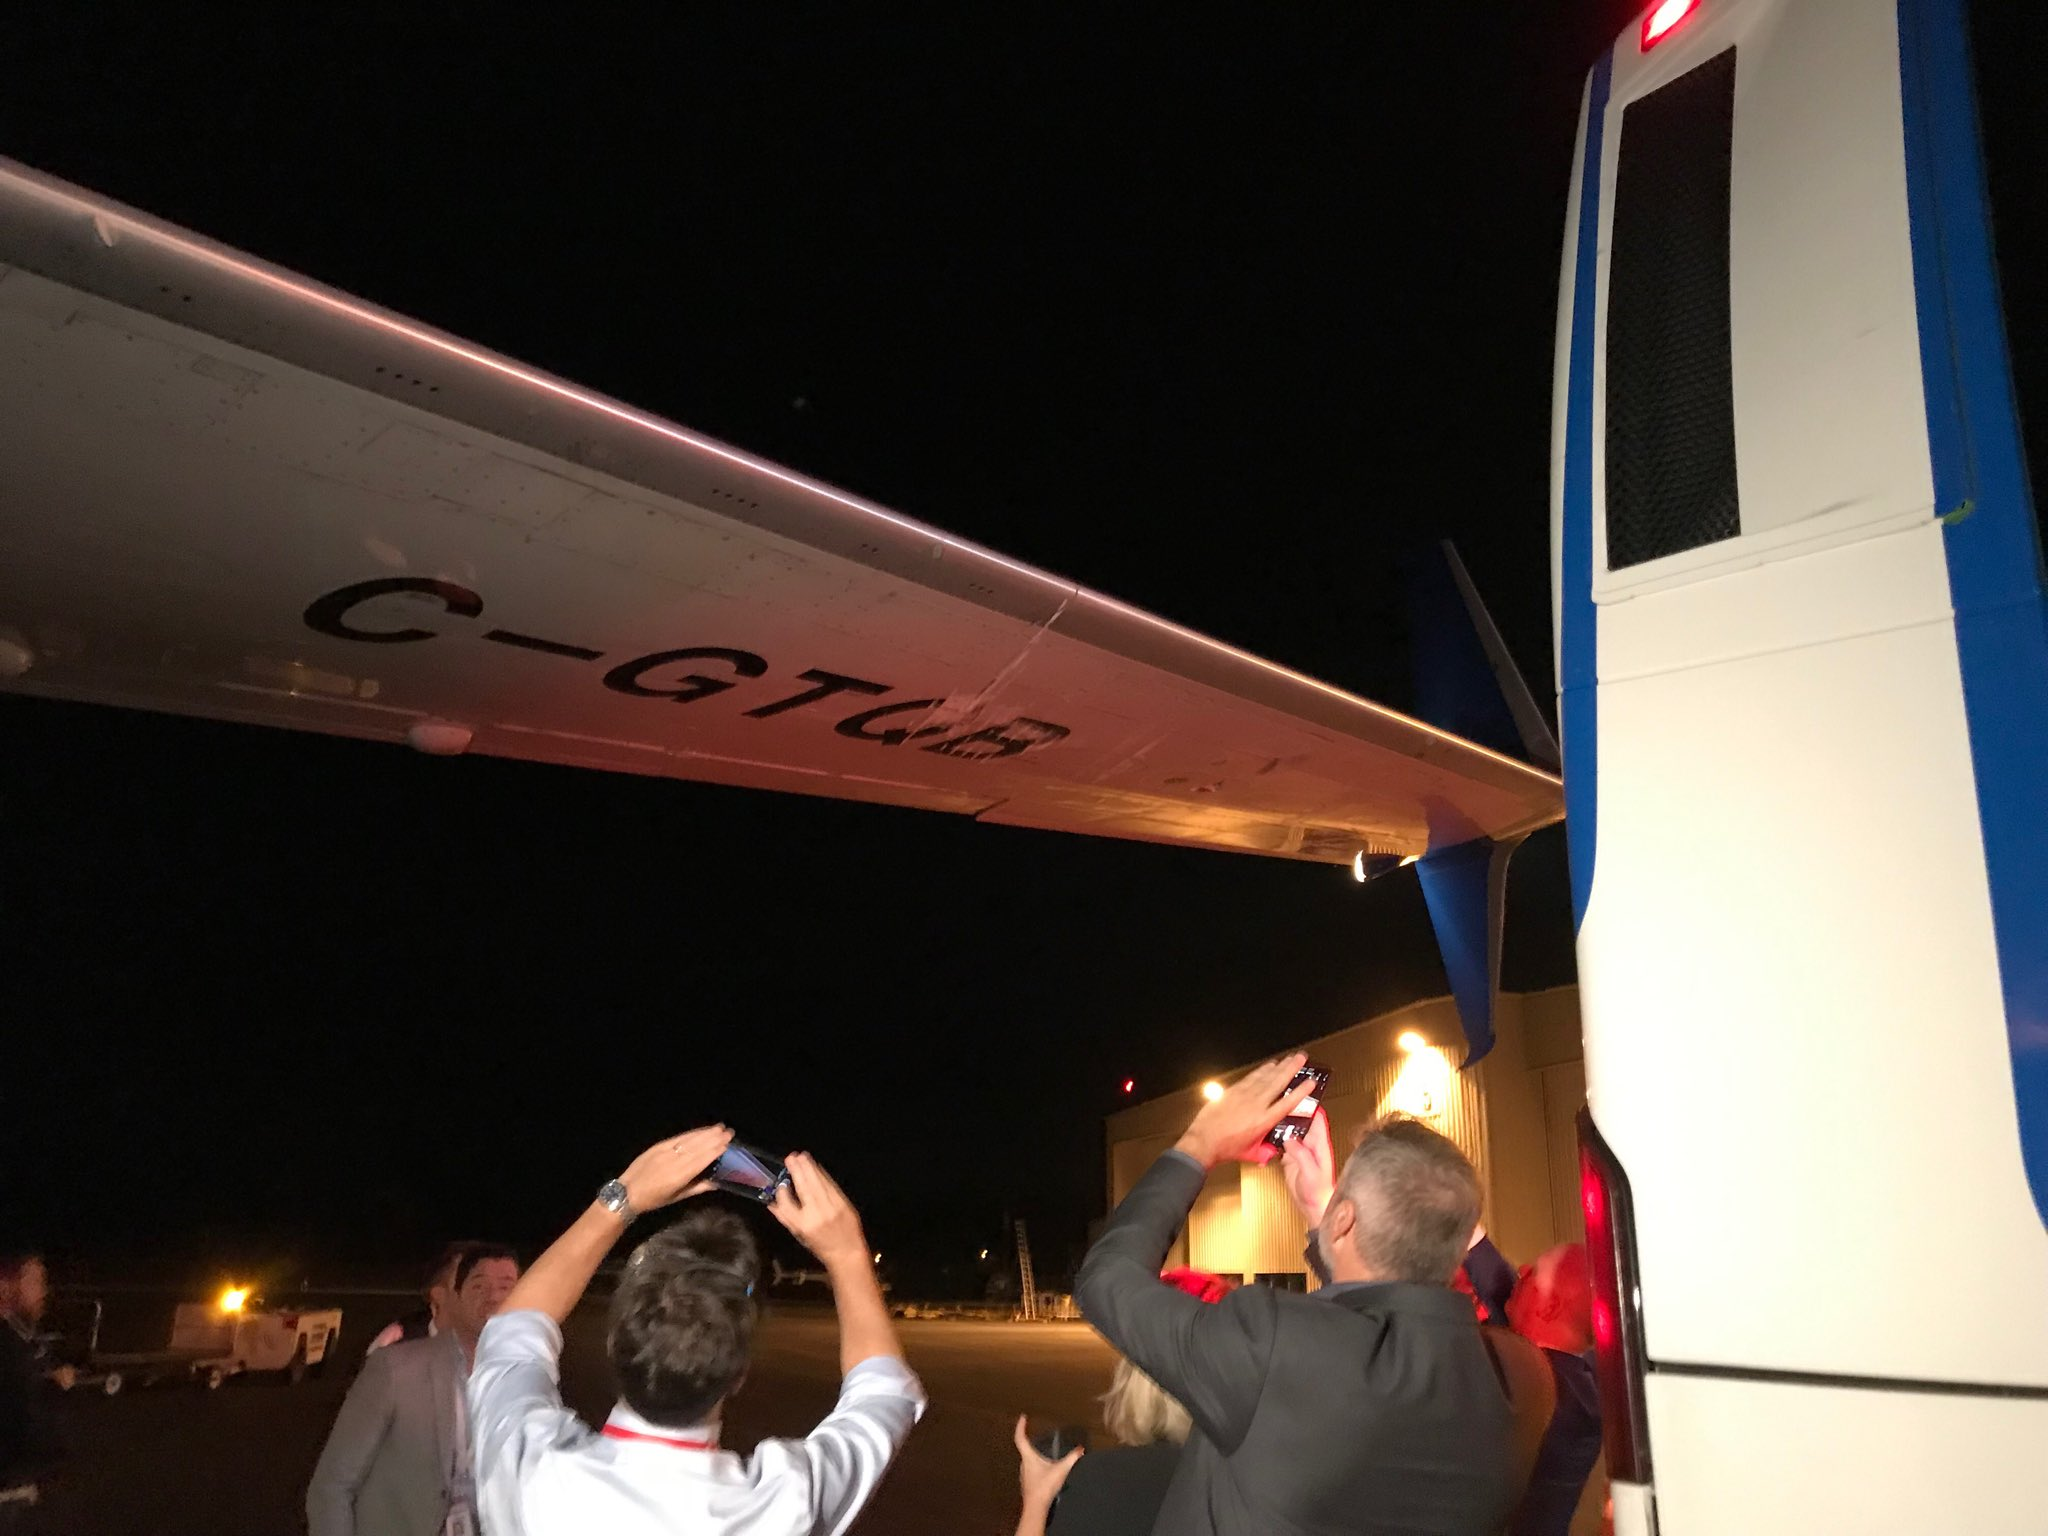 Media bus crashes into Liberal campaign plane wing on first night of election